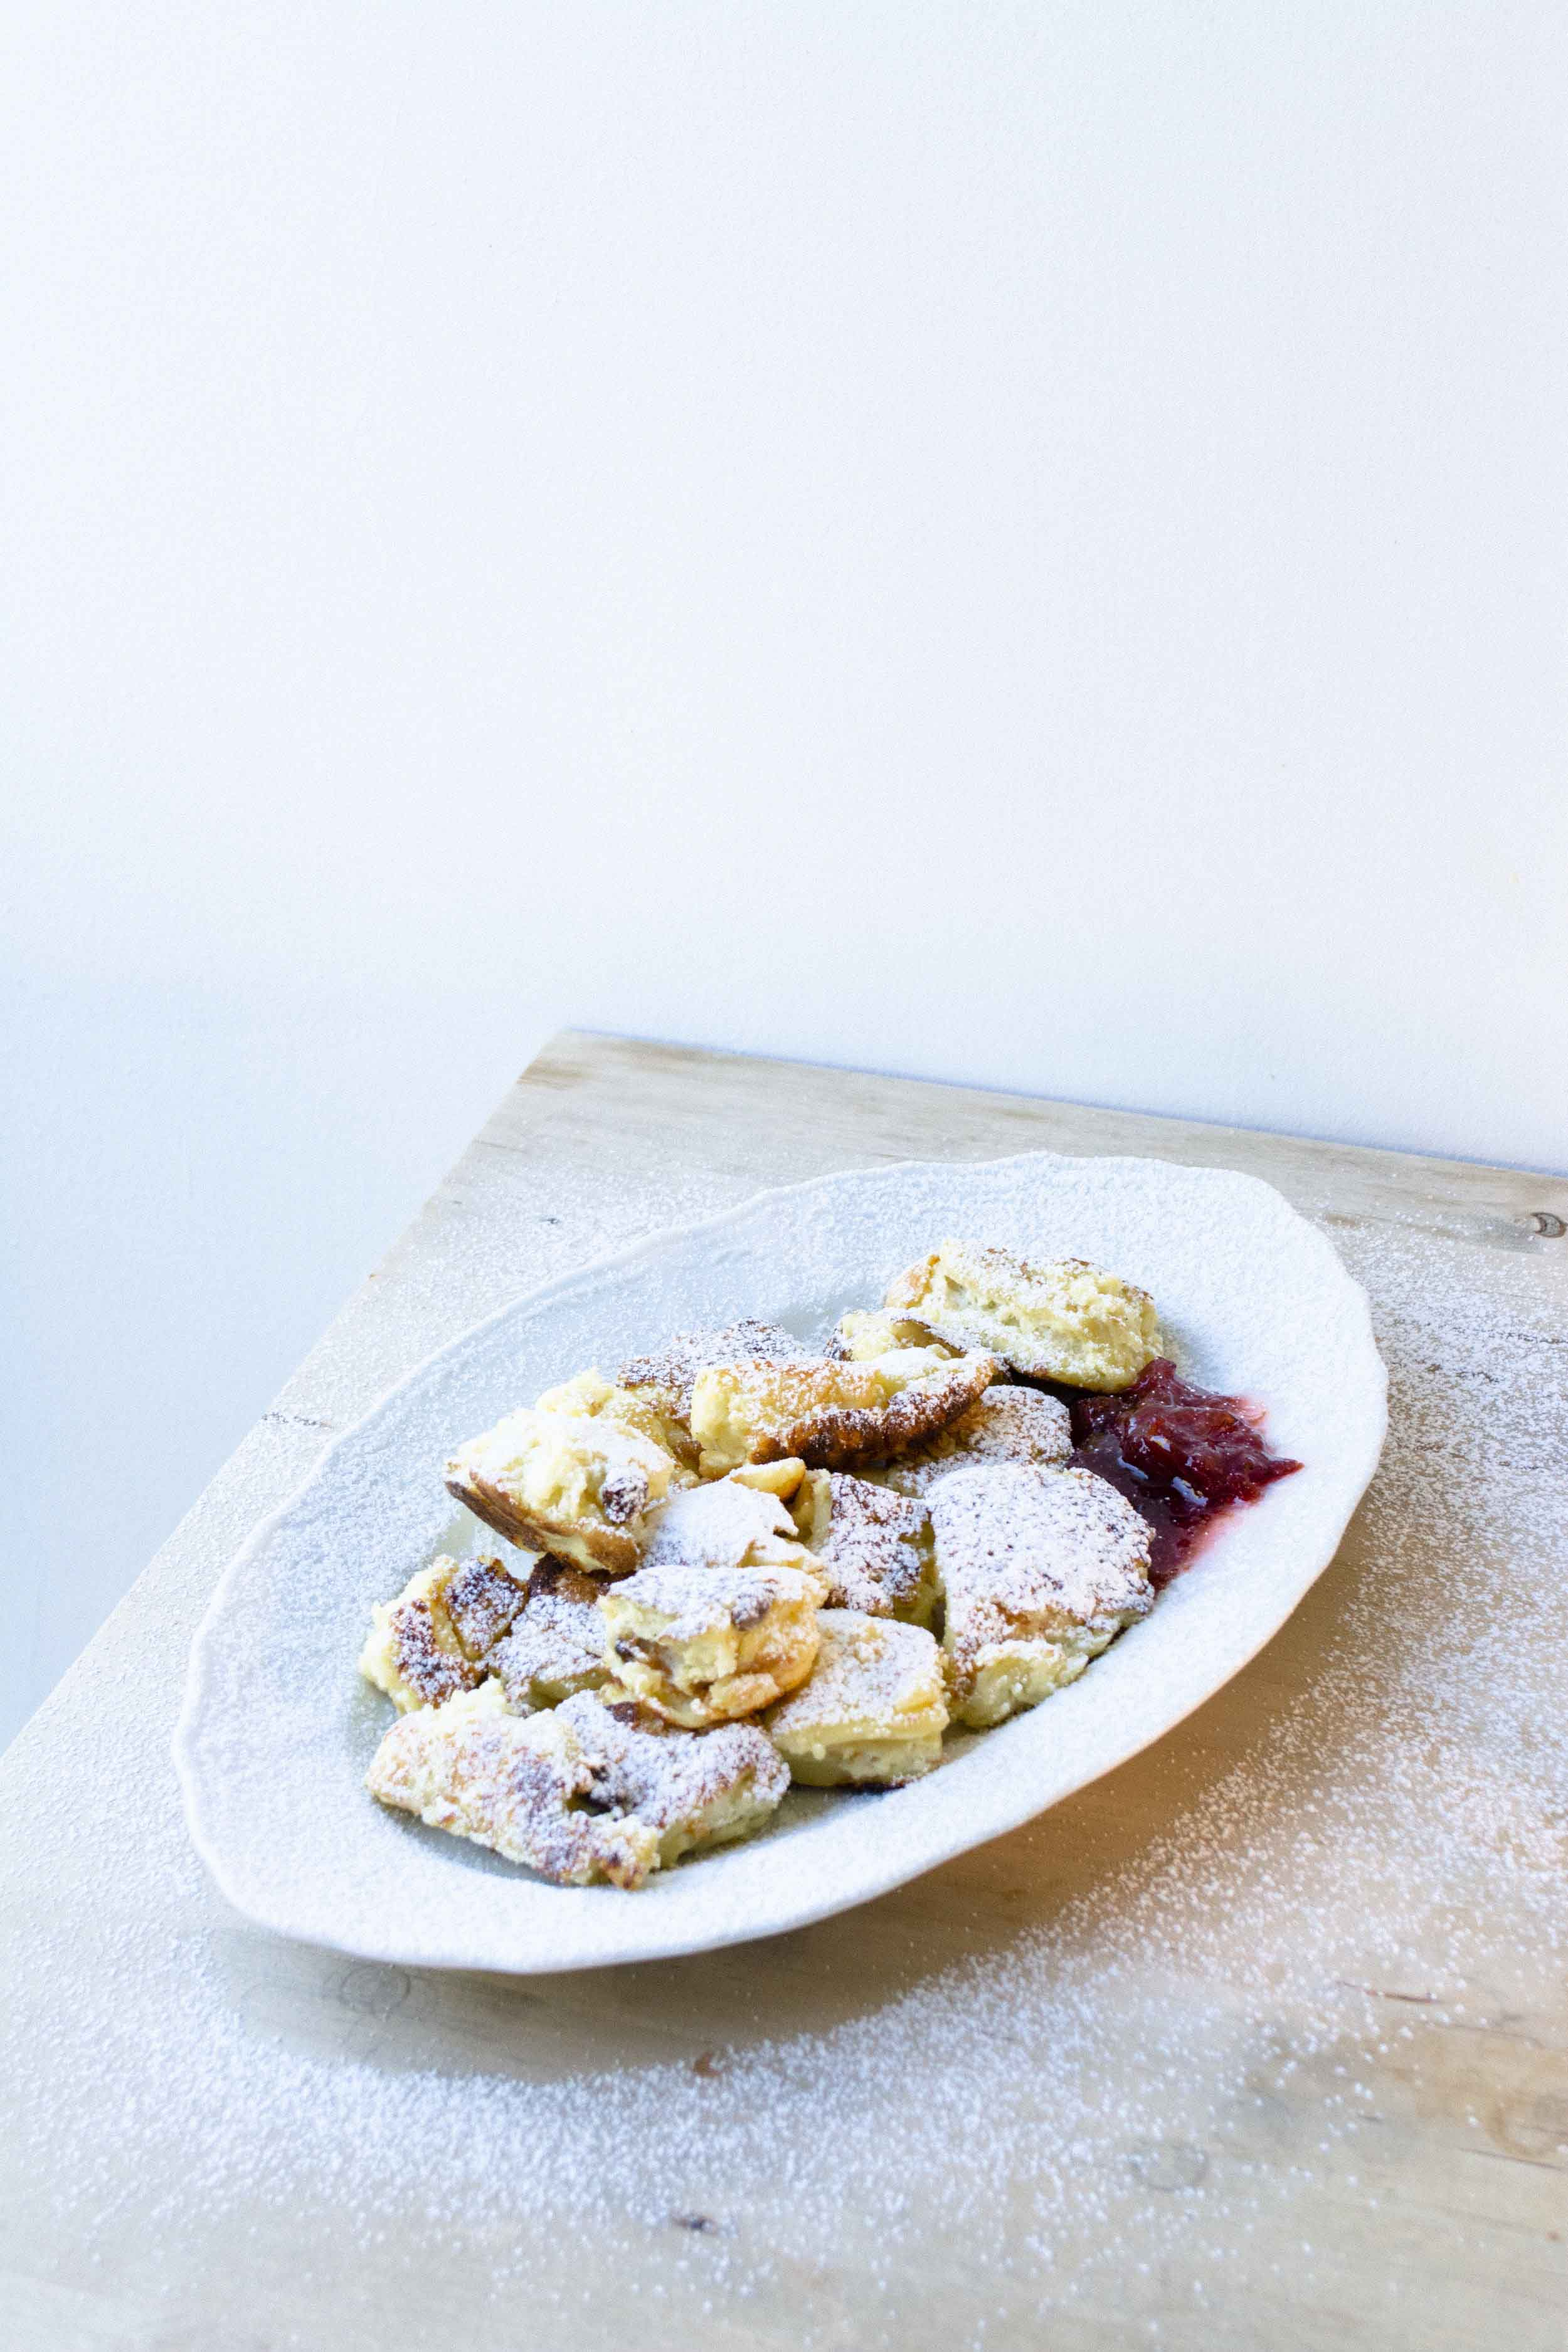 Food Photography (Recipe: Kaiserschmarrn) by Magdalena Weiss